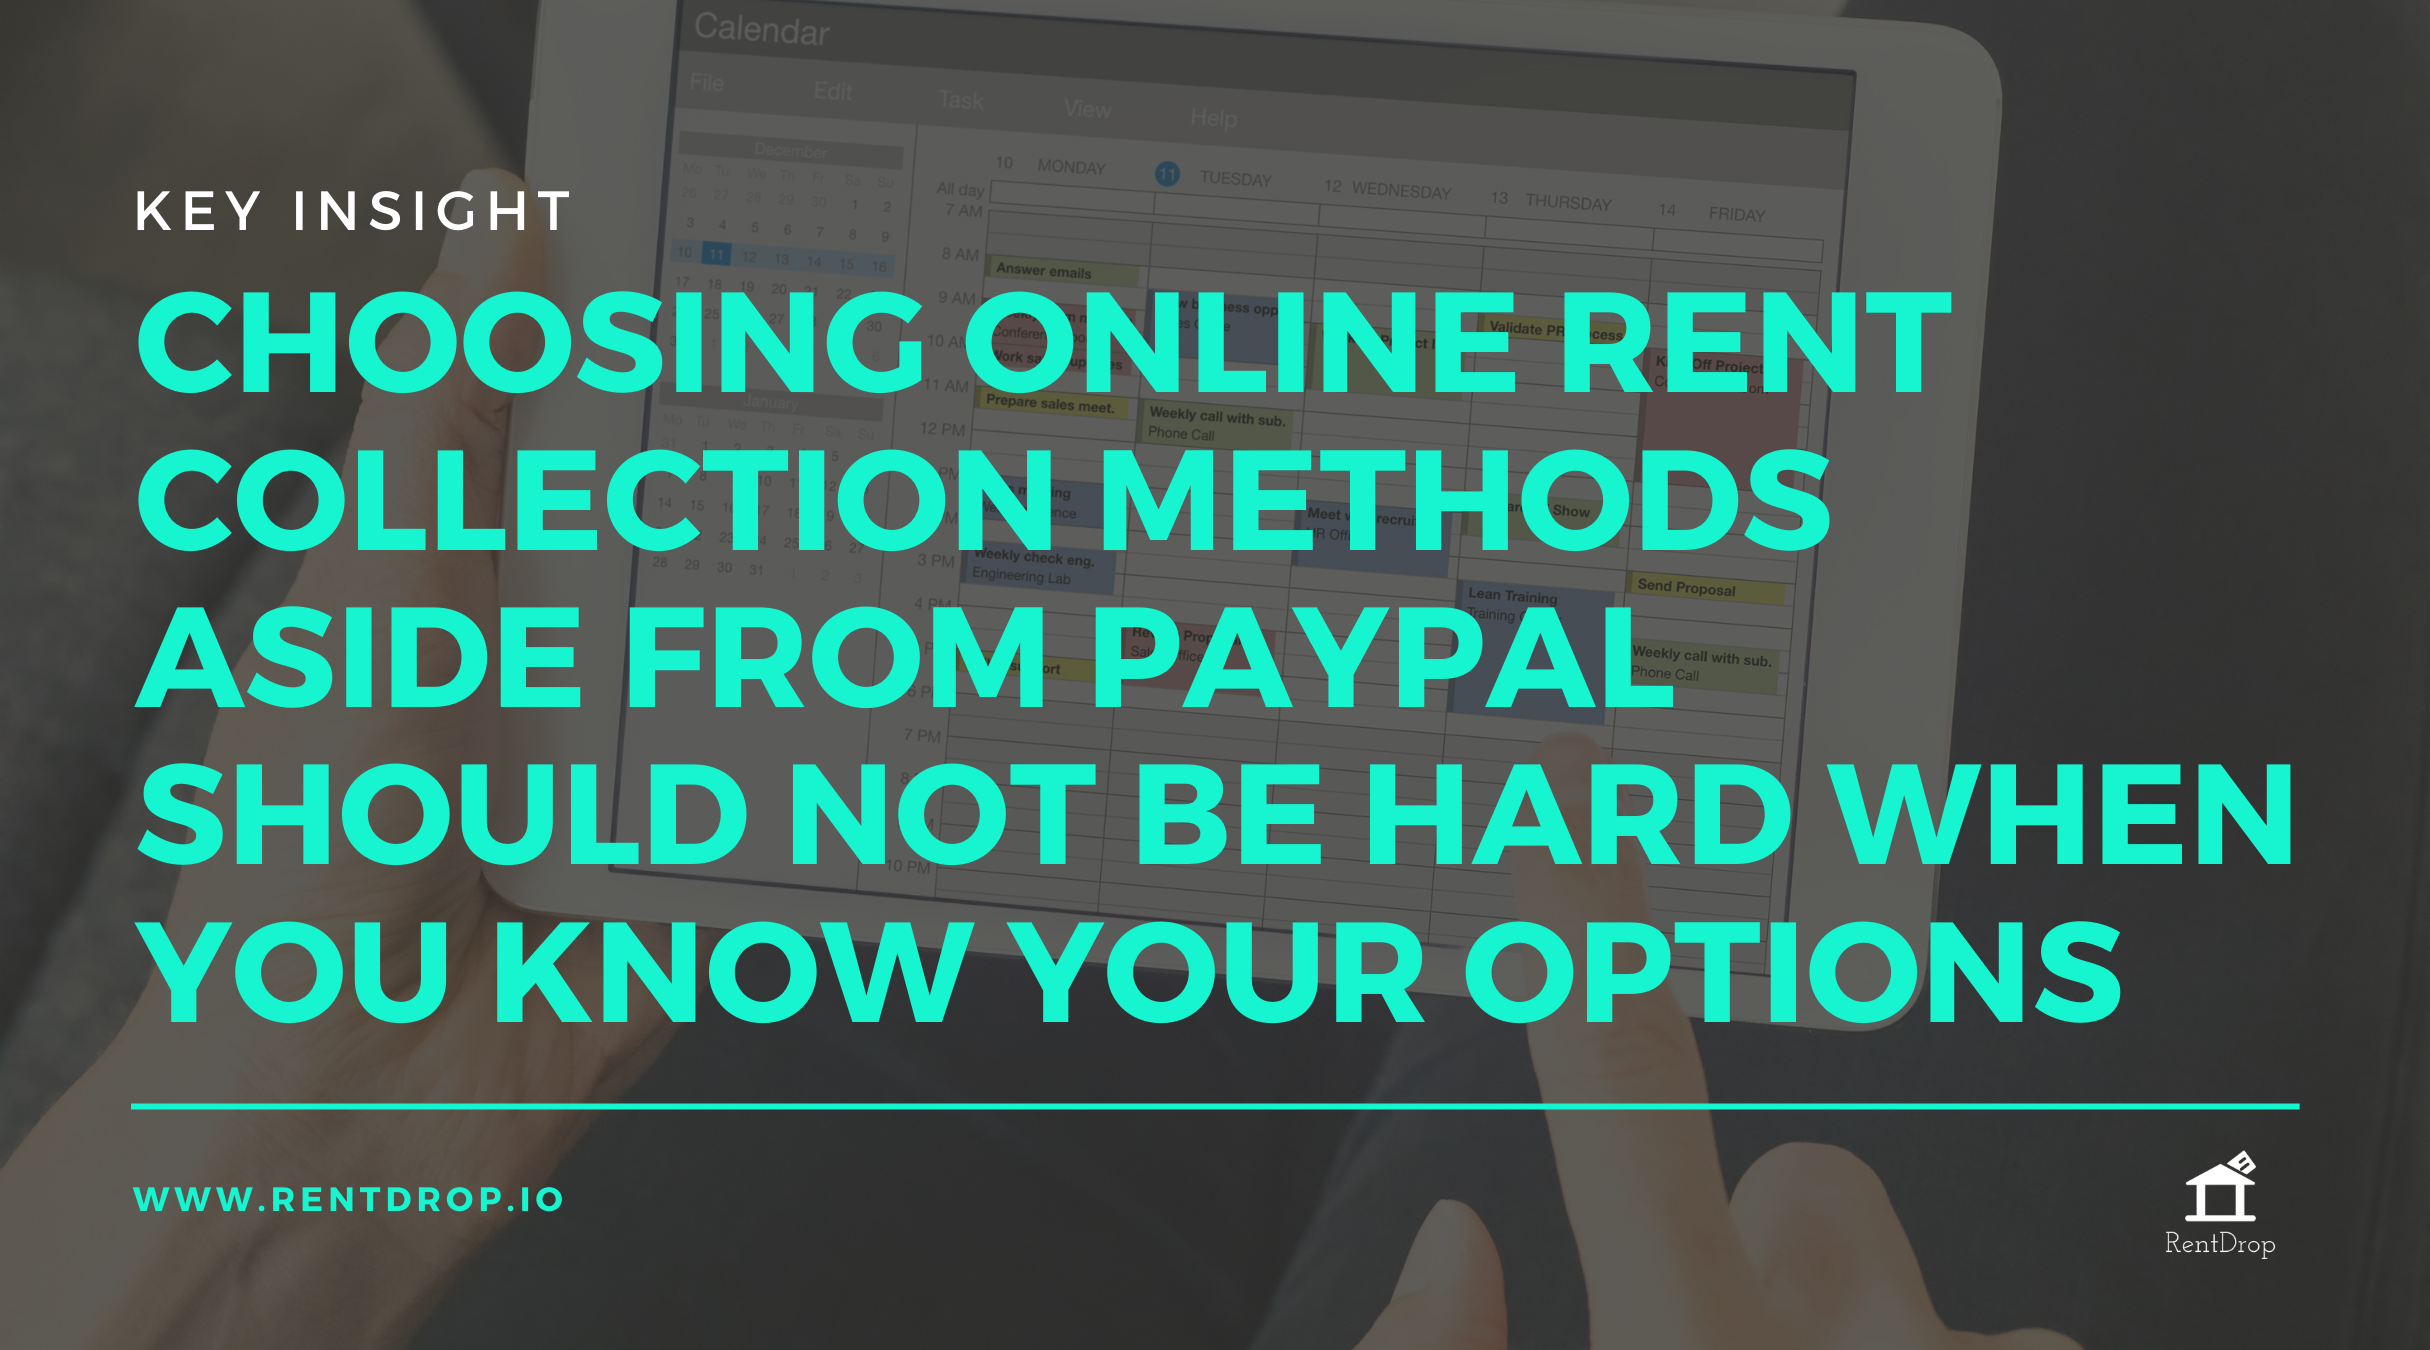 RentDrop Paypal collecting rent online quote image